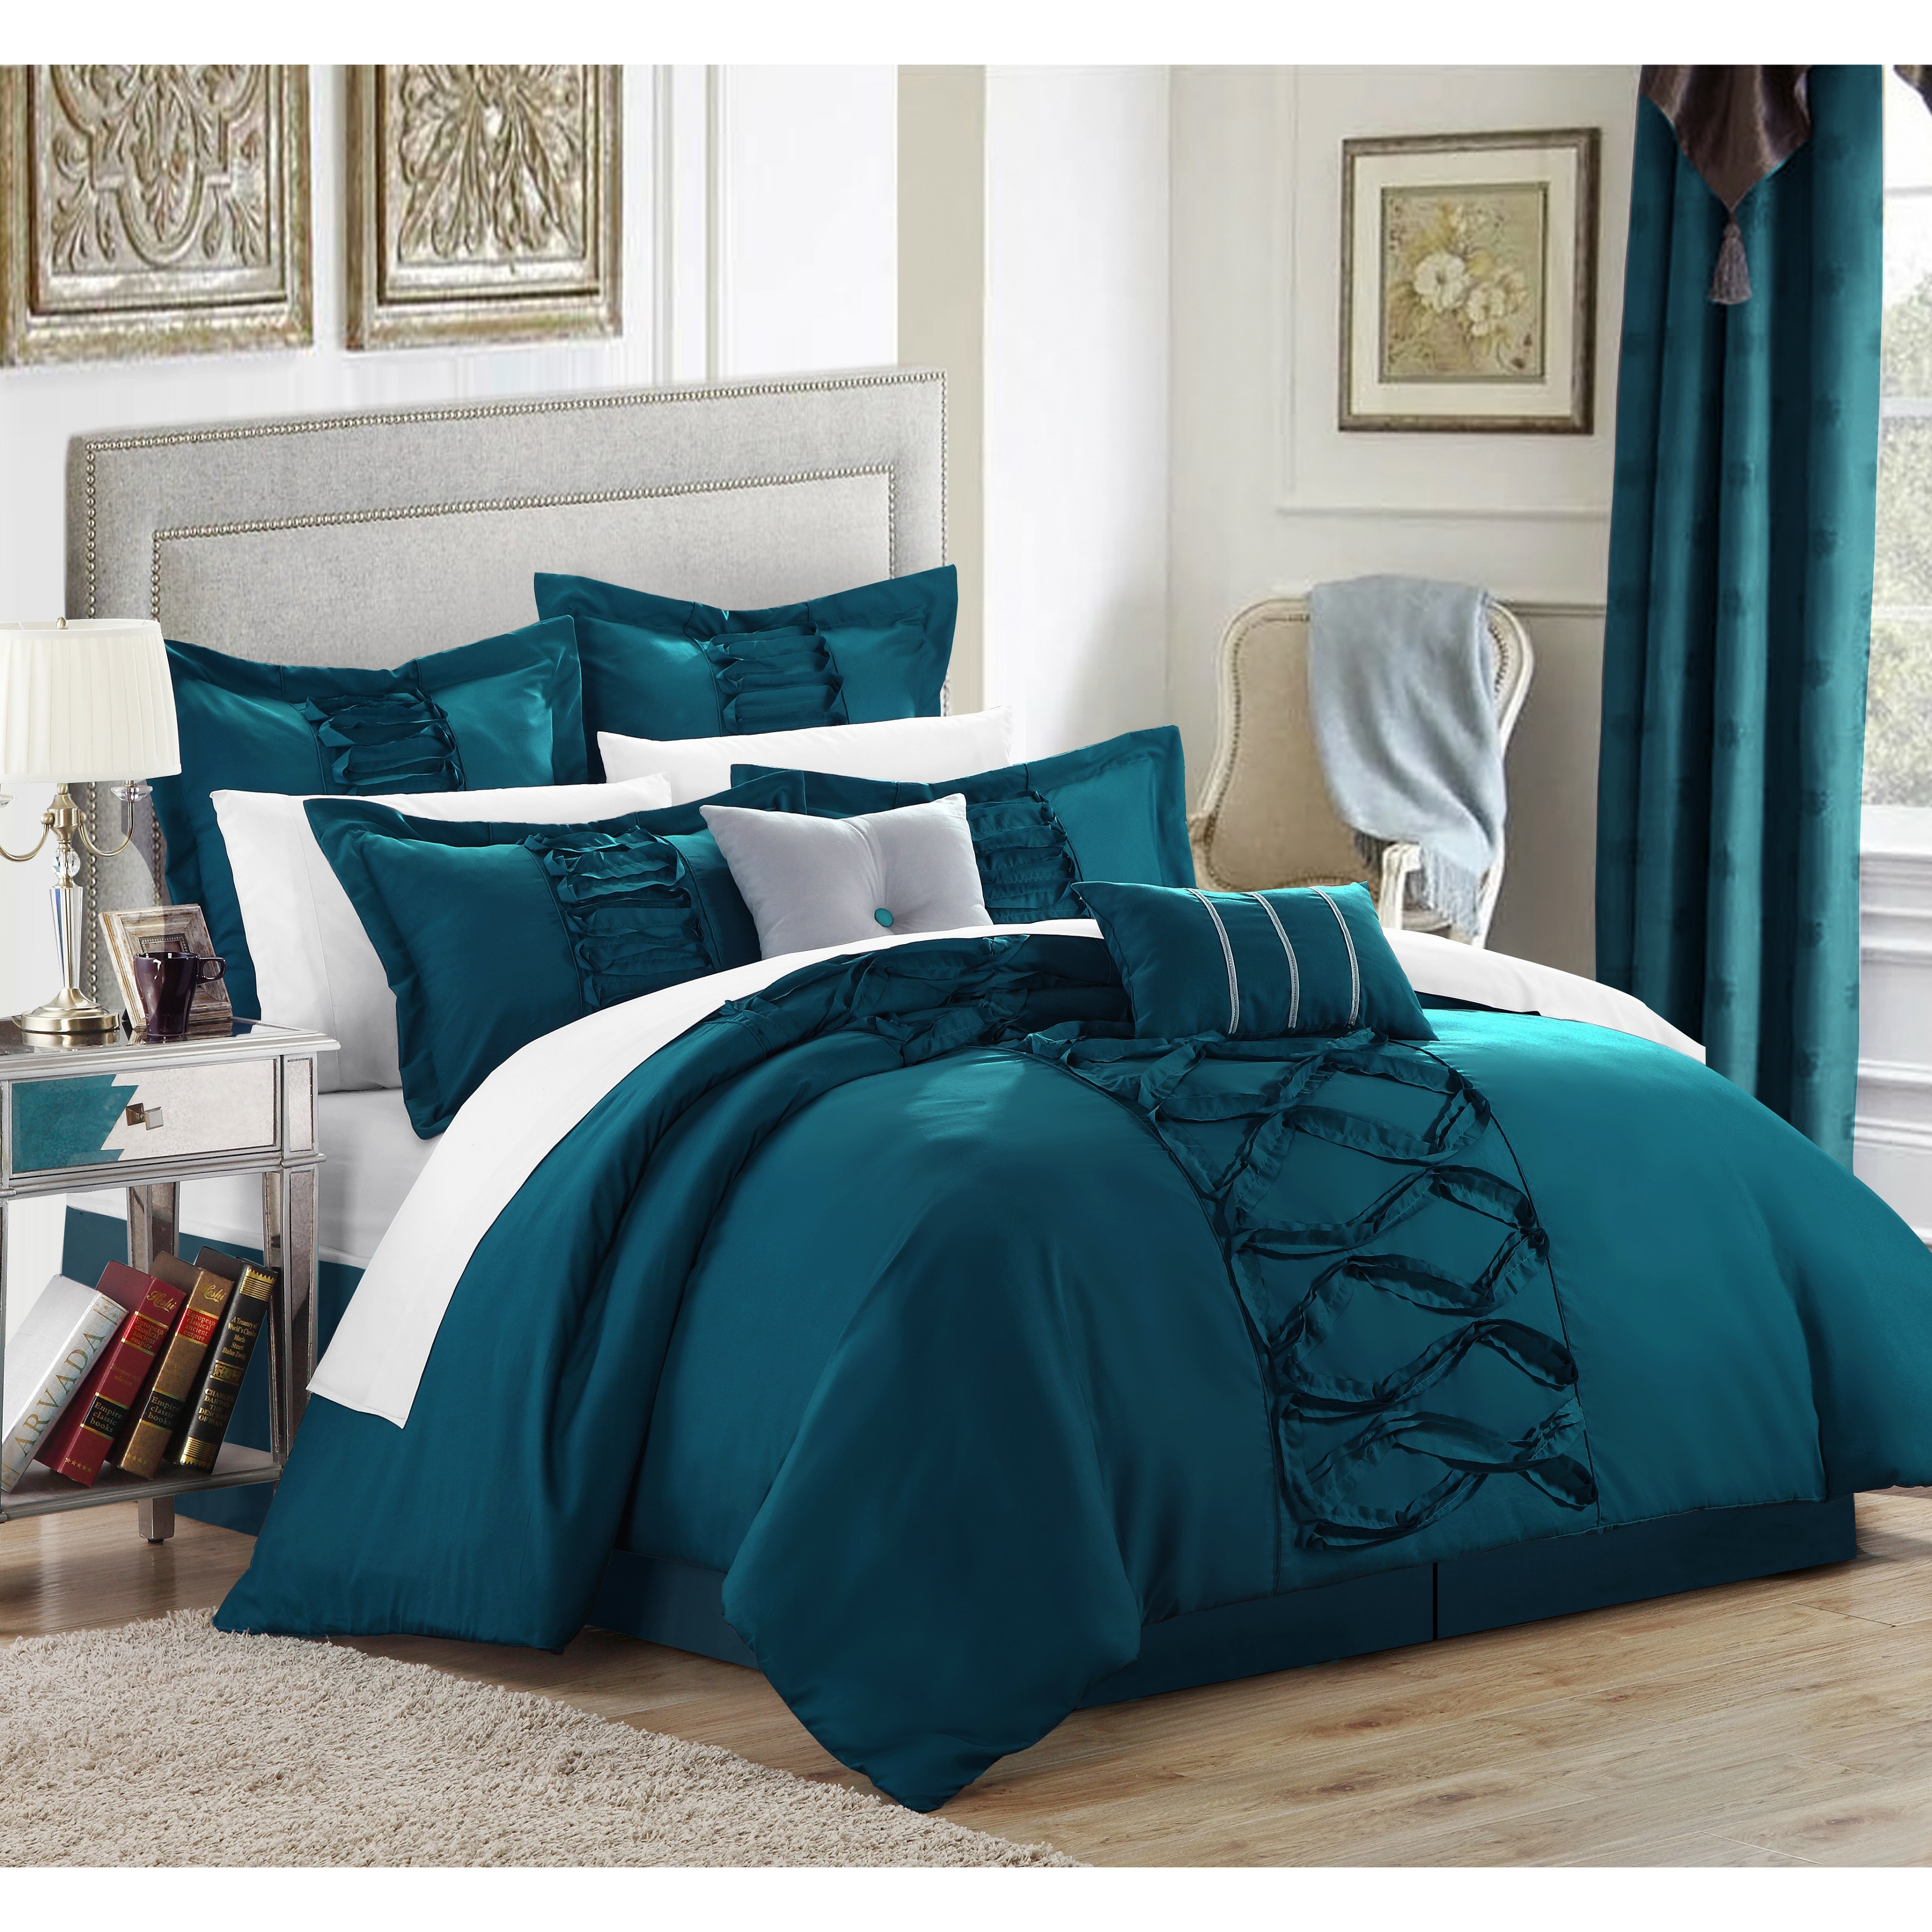 Oliver James Marlene Turquoise 12 Piece Bed In A Bag With Sheet Set On Free Shipping Today 19972859